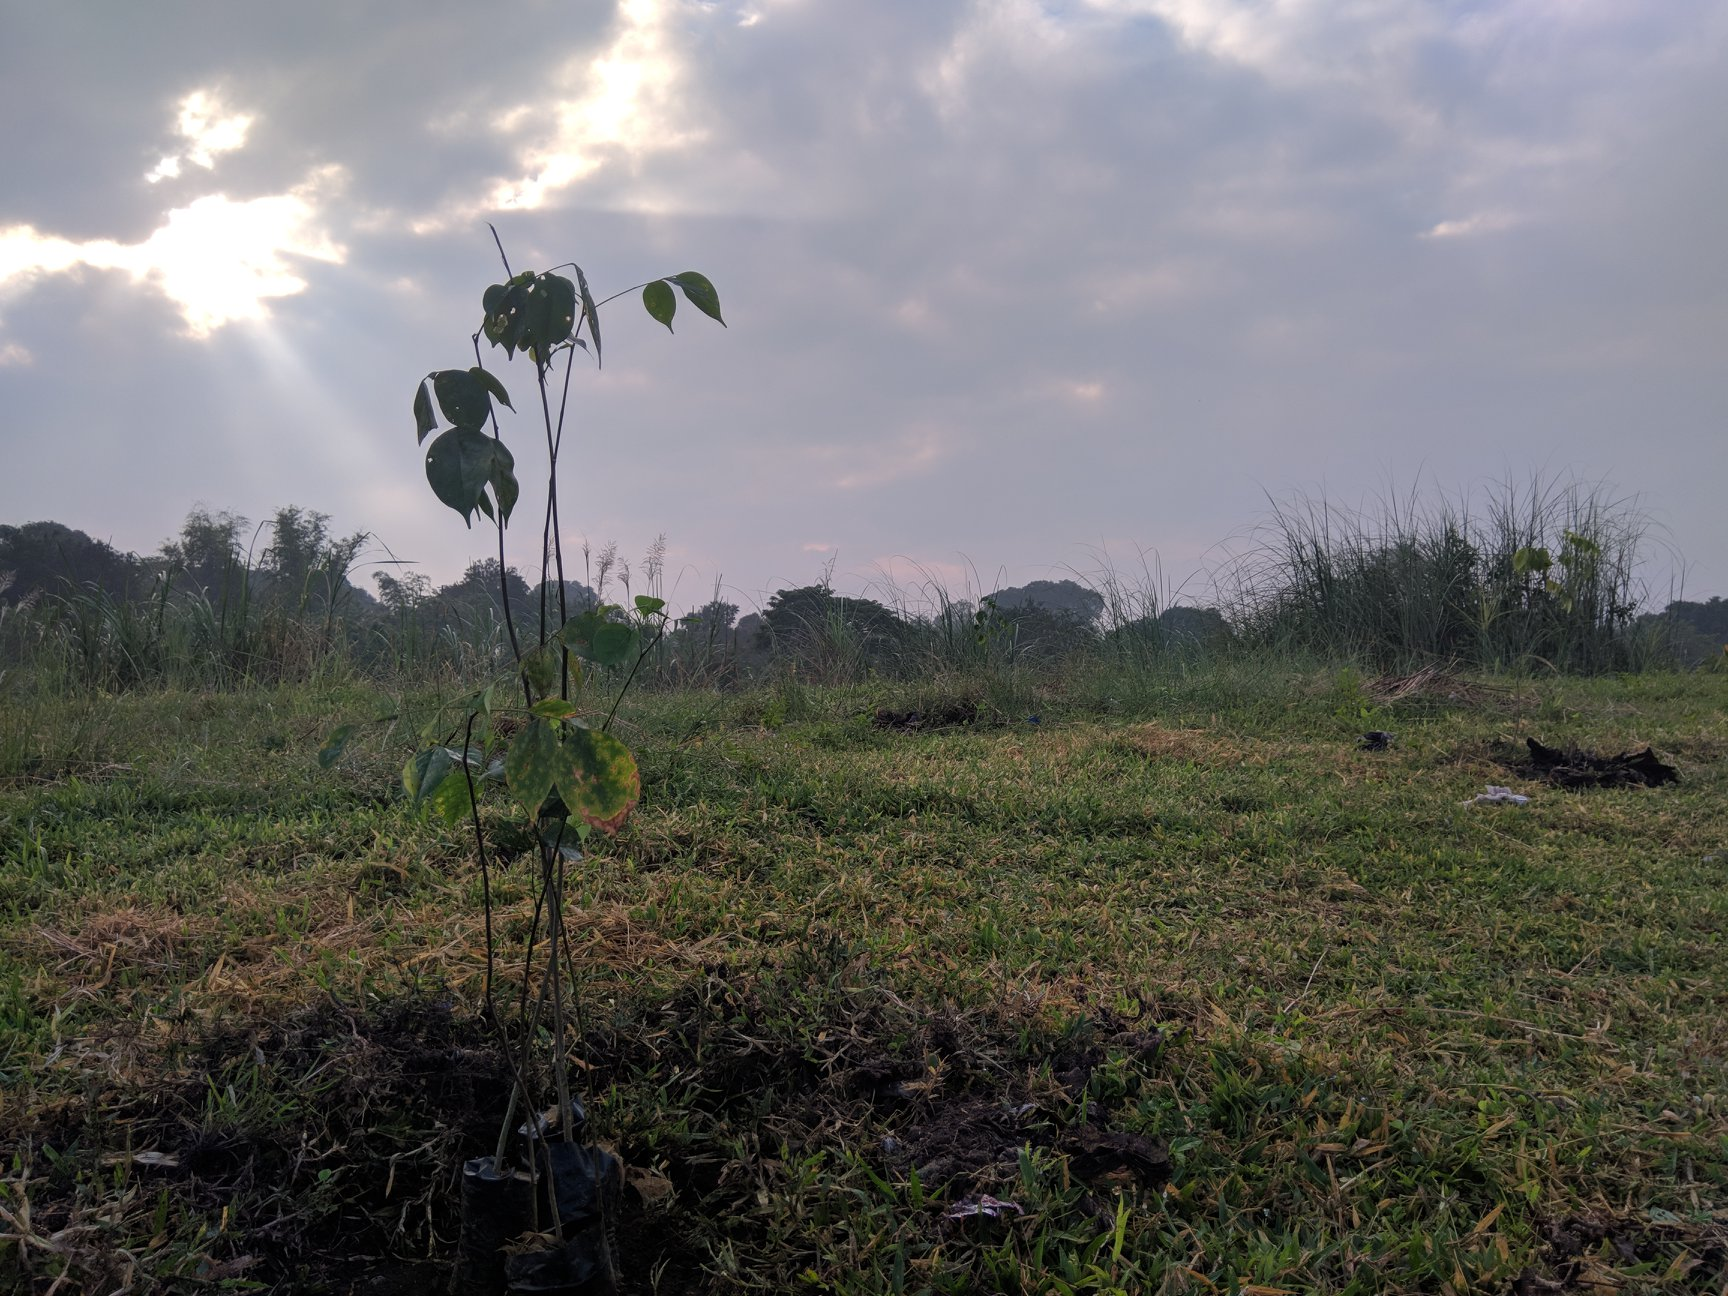 Tree Planting for Rehabilitation of Closed Dumpsite